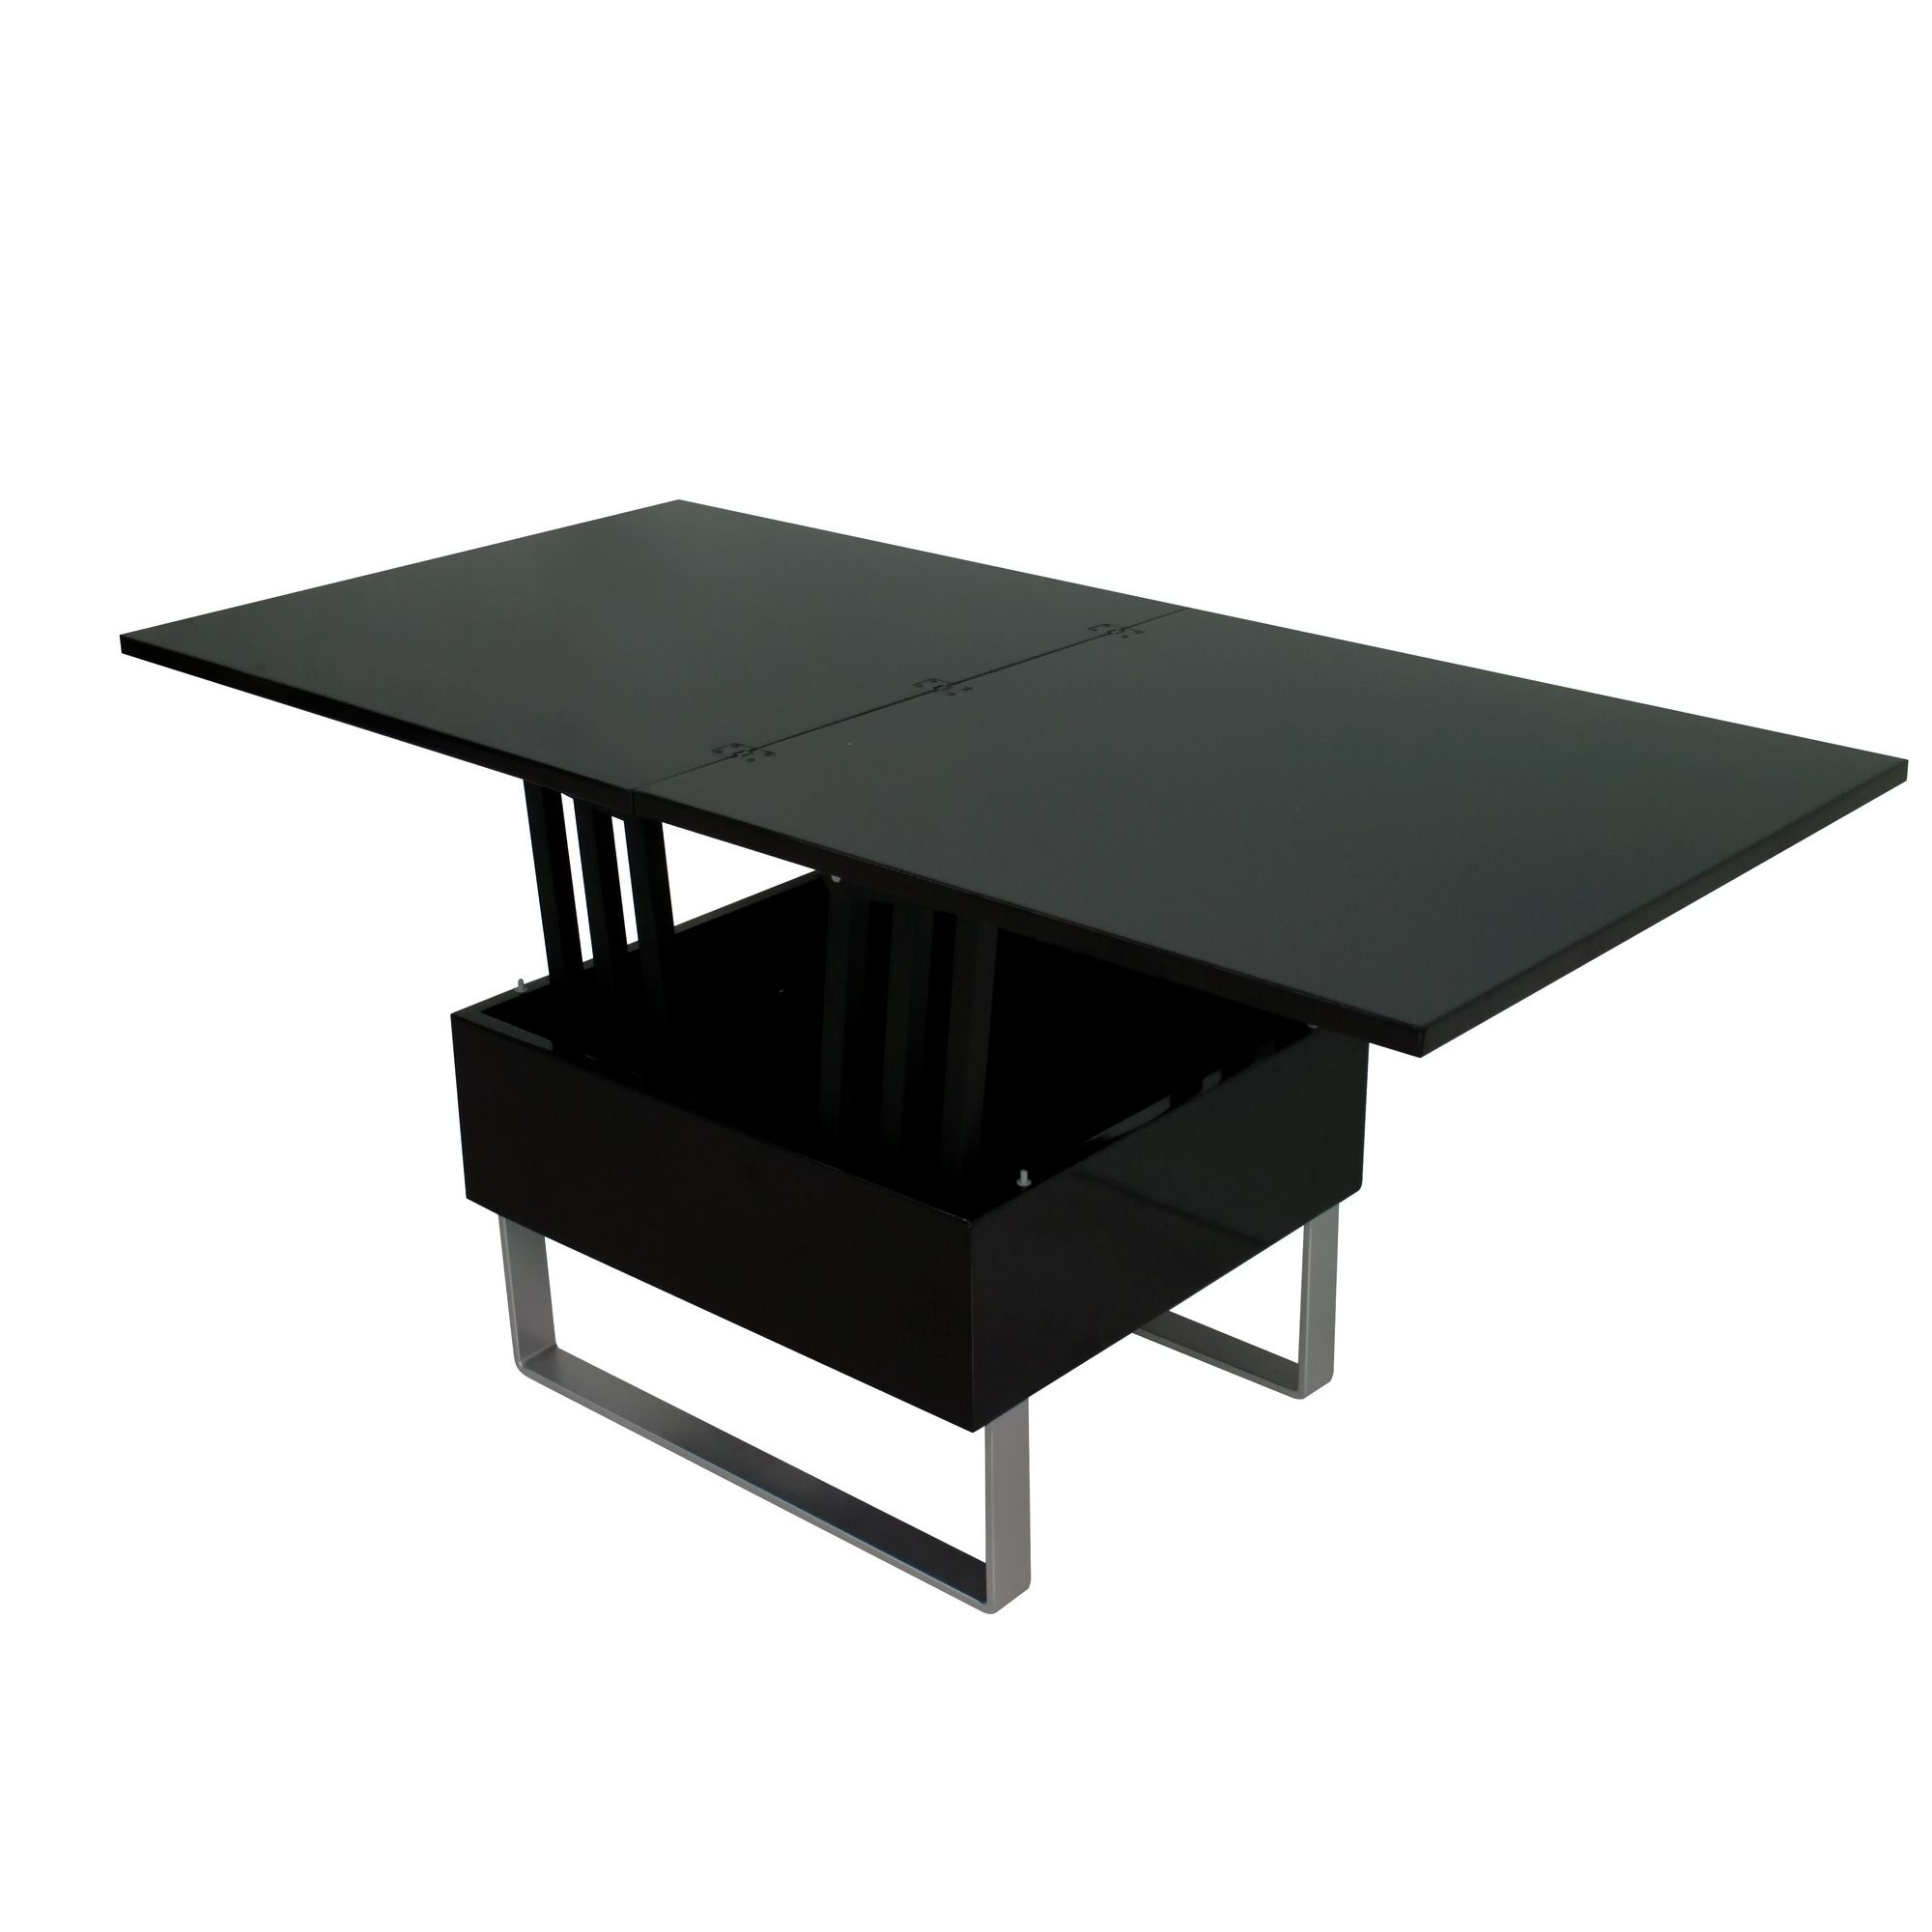 table basse noir laque ikea maison design. Black Bedroom Furniture Sets. Home Design Ideas